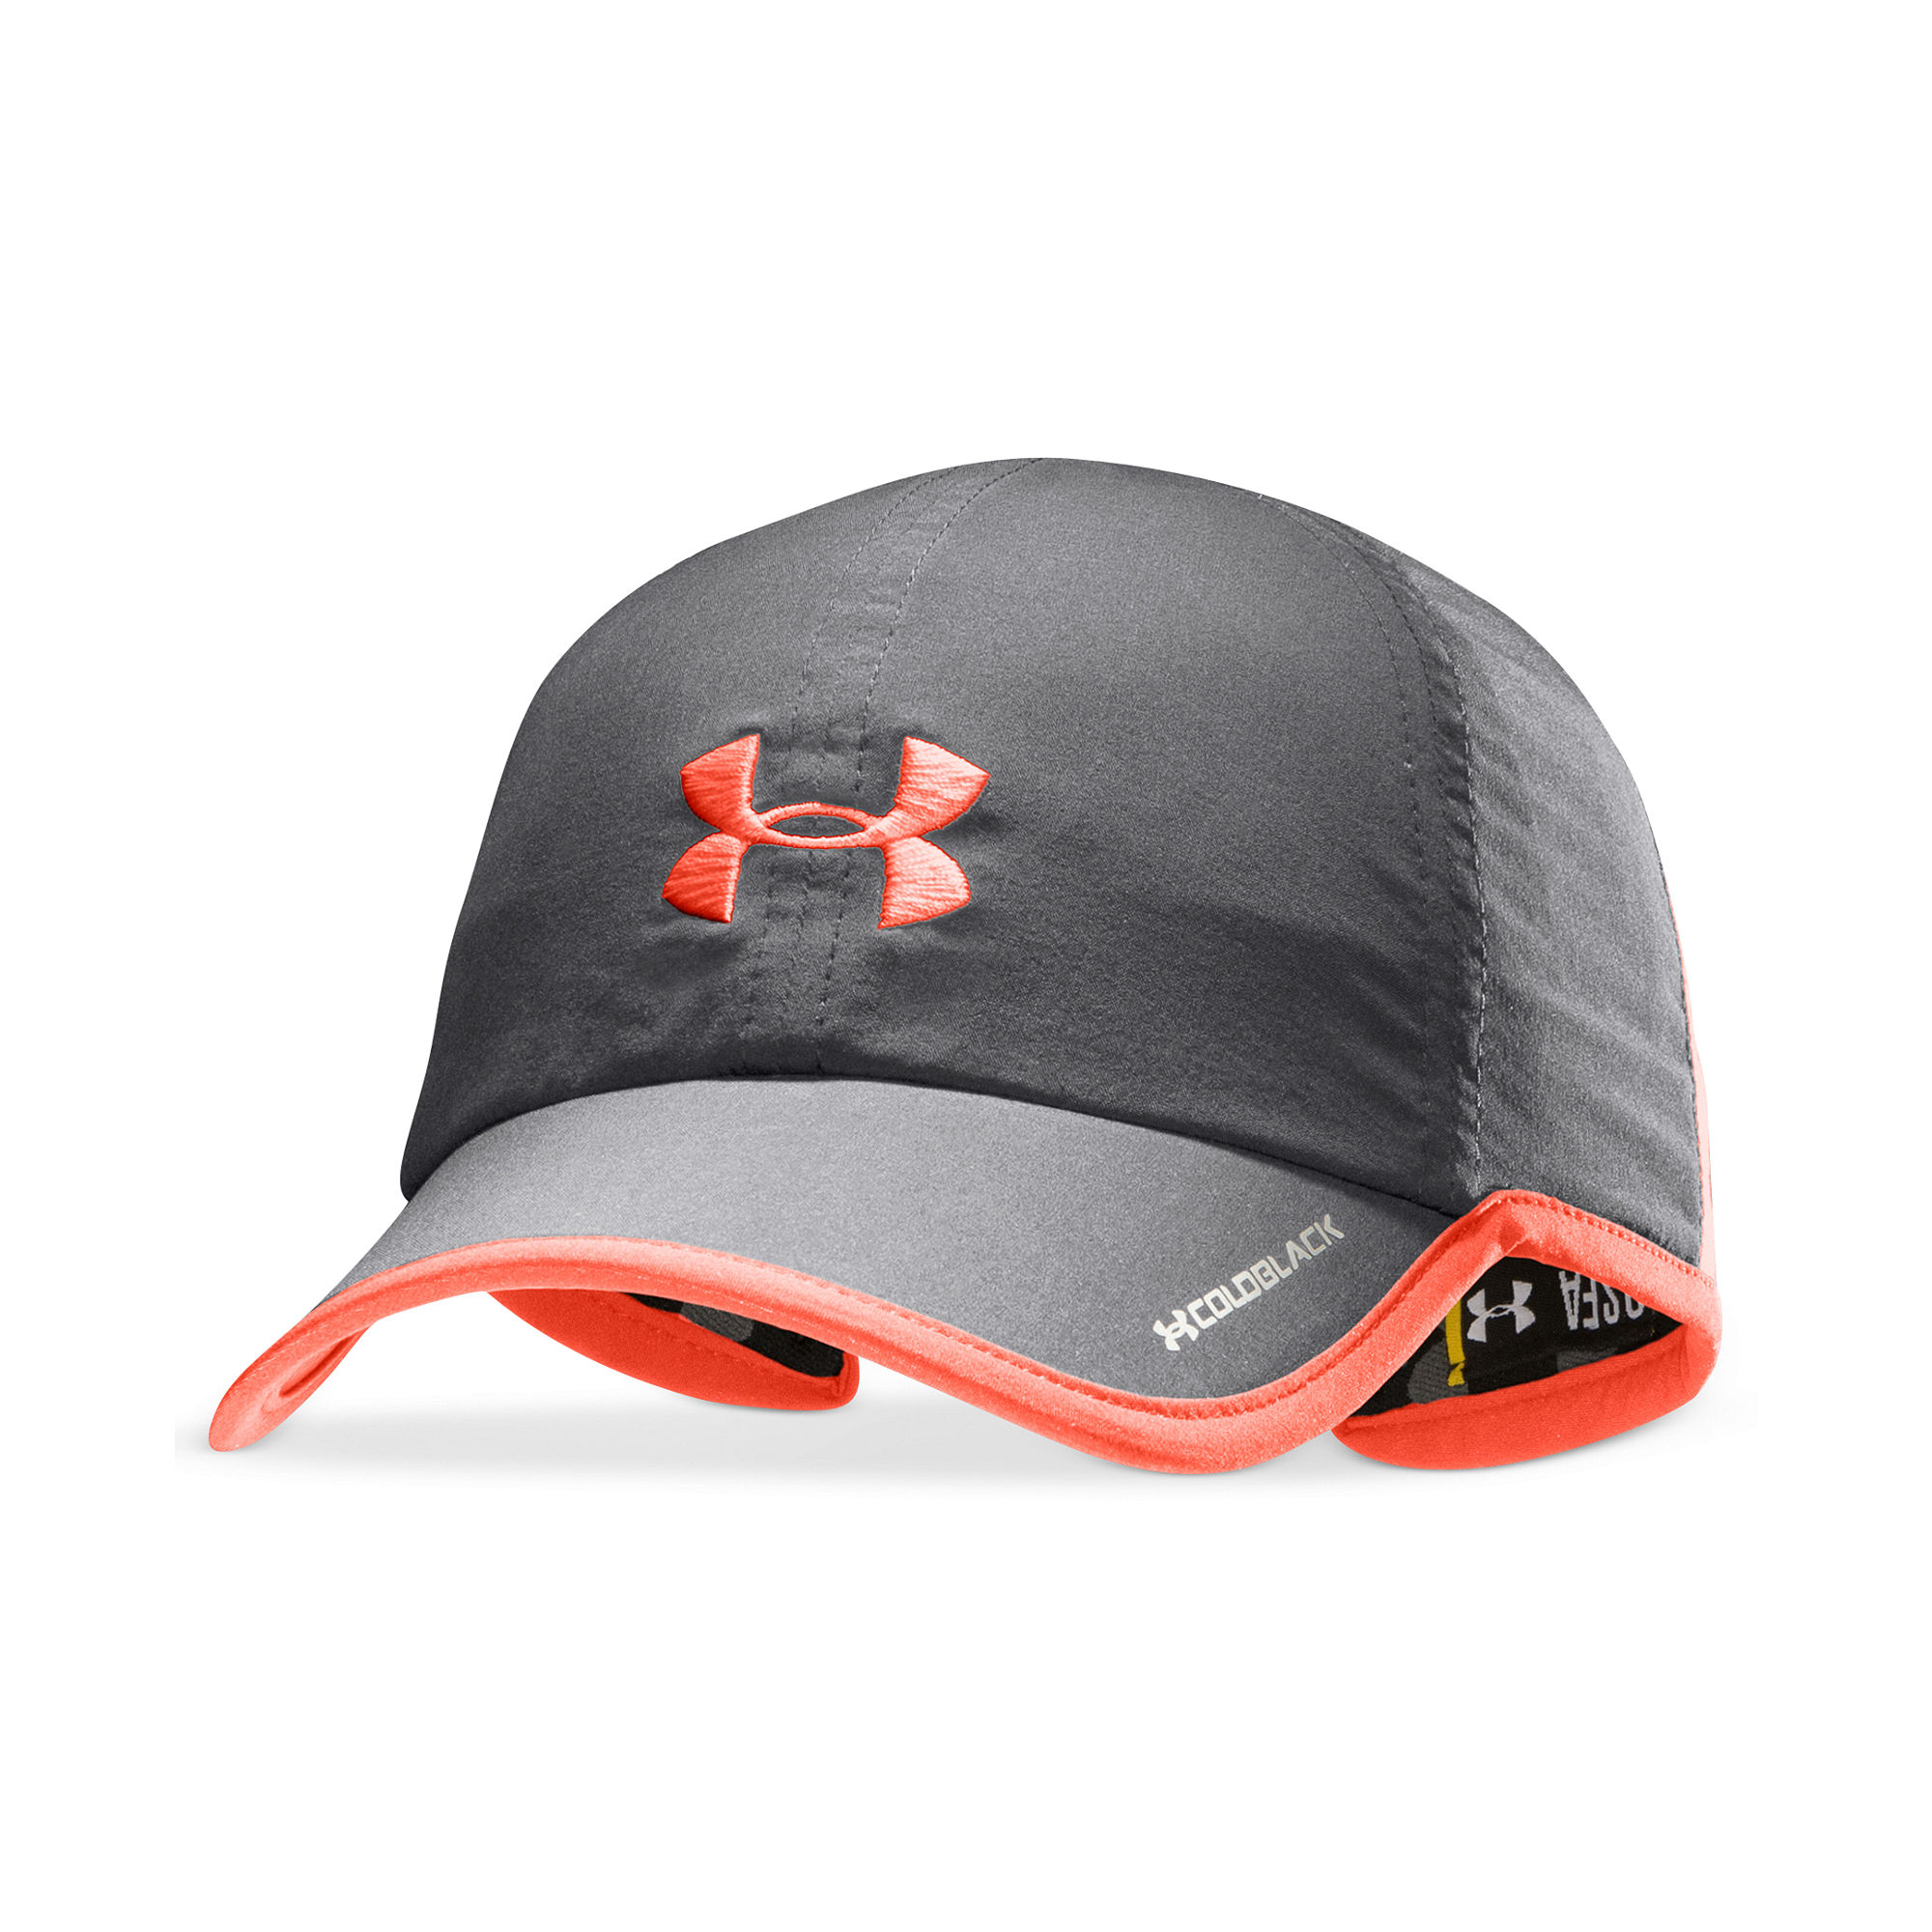 da669186a0a Lyst - Under Armour Shadow Sport Cap in Black